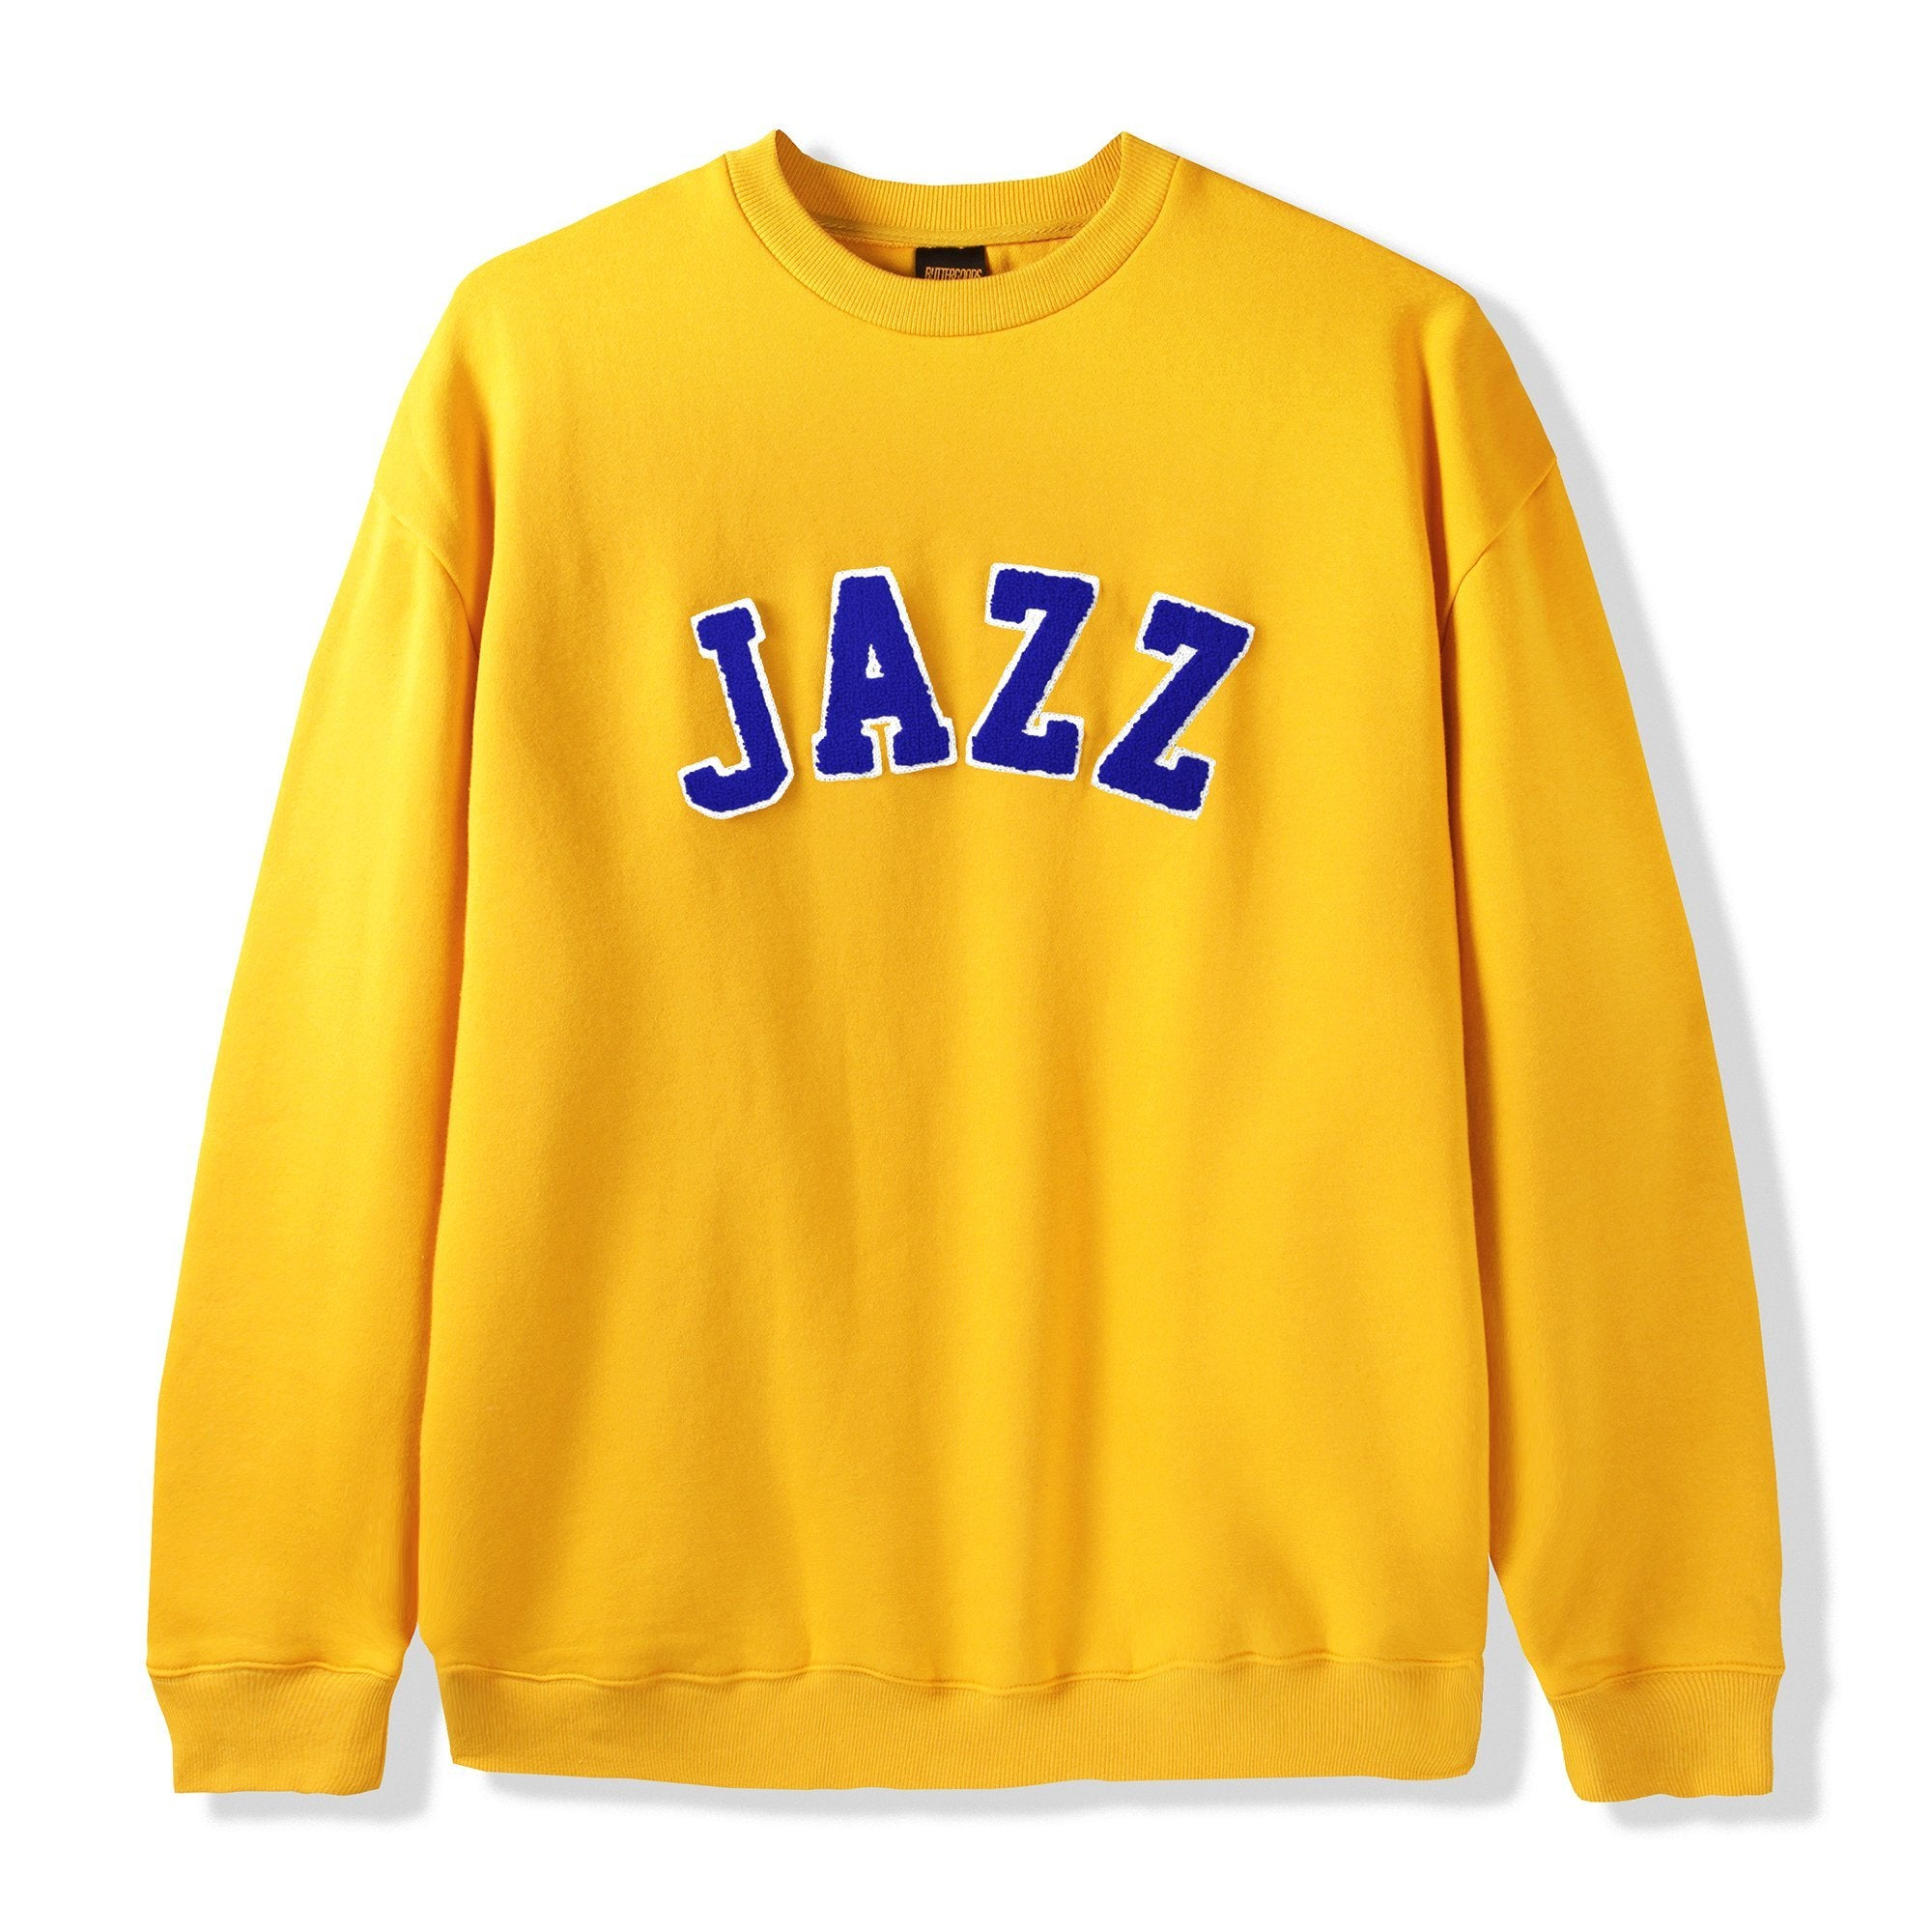 Butter Goods Jazz Applique Crewneck Product Photo #1